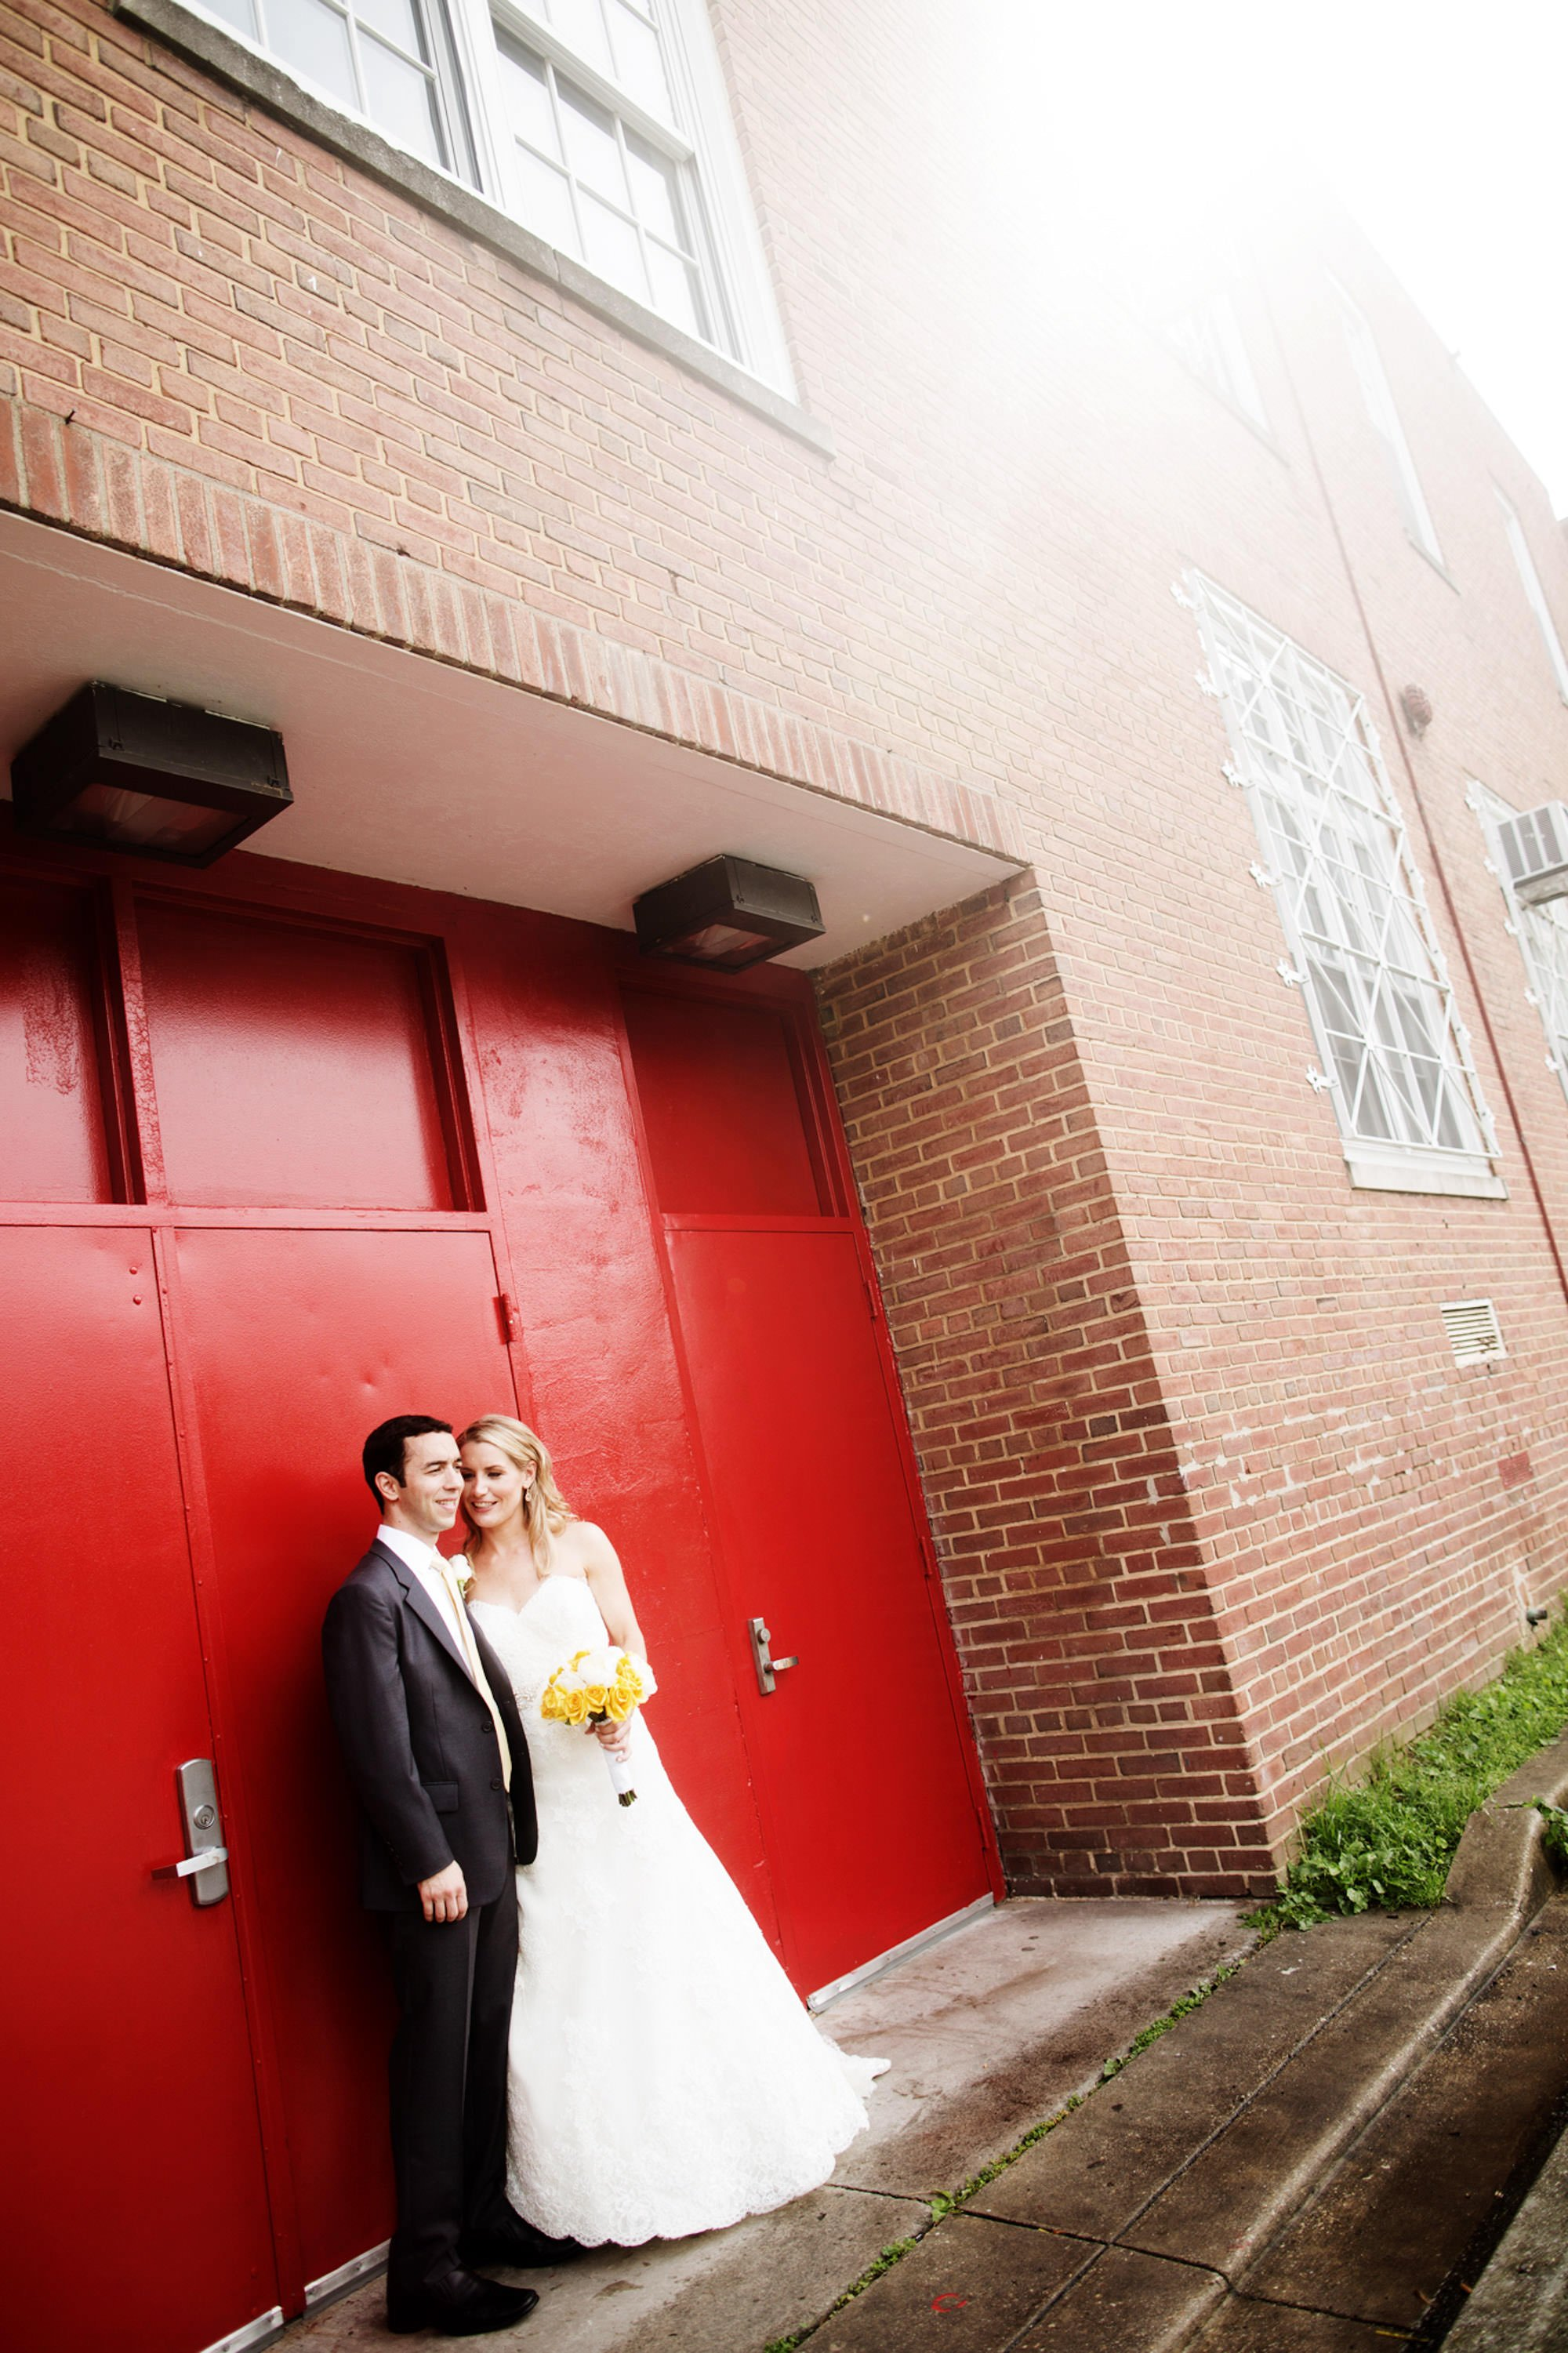 The couple poses for a portrait in front of red doors before their Park Hyatt Washington DC Wedding.